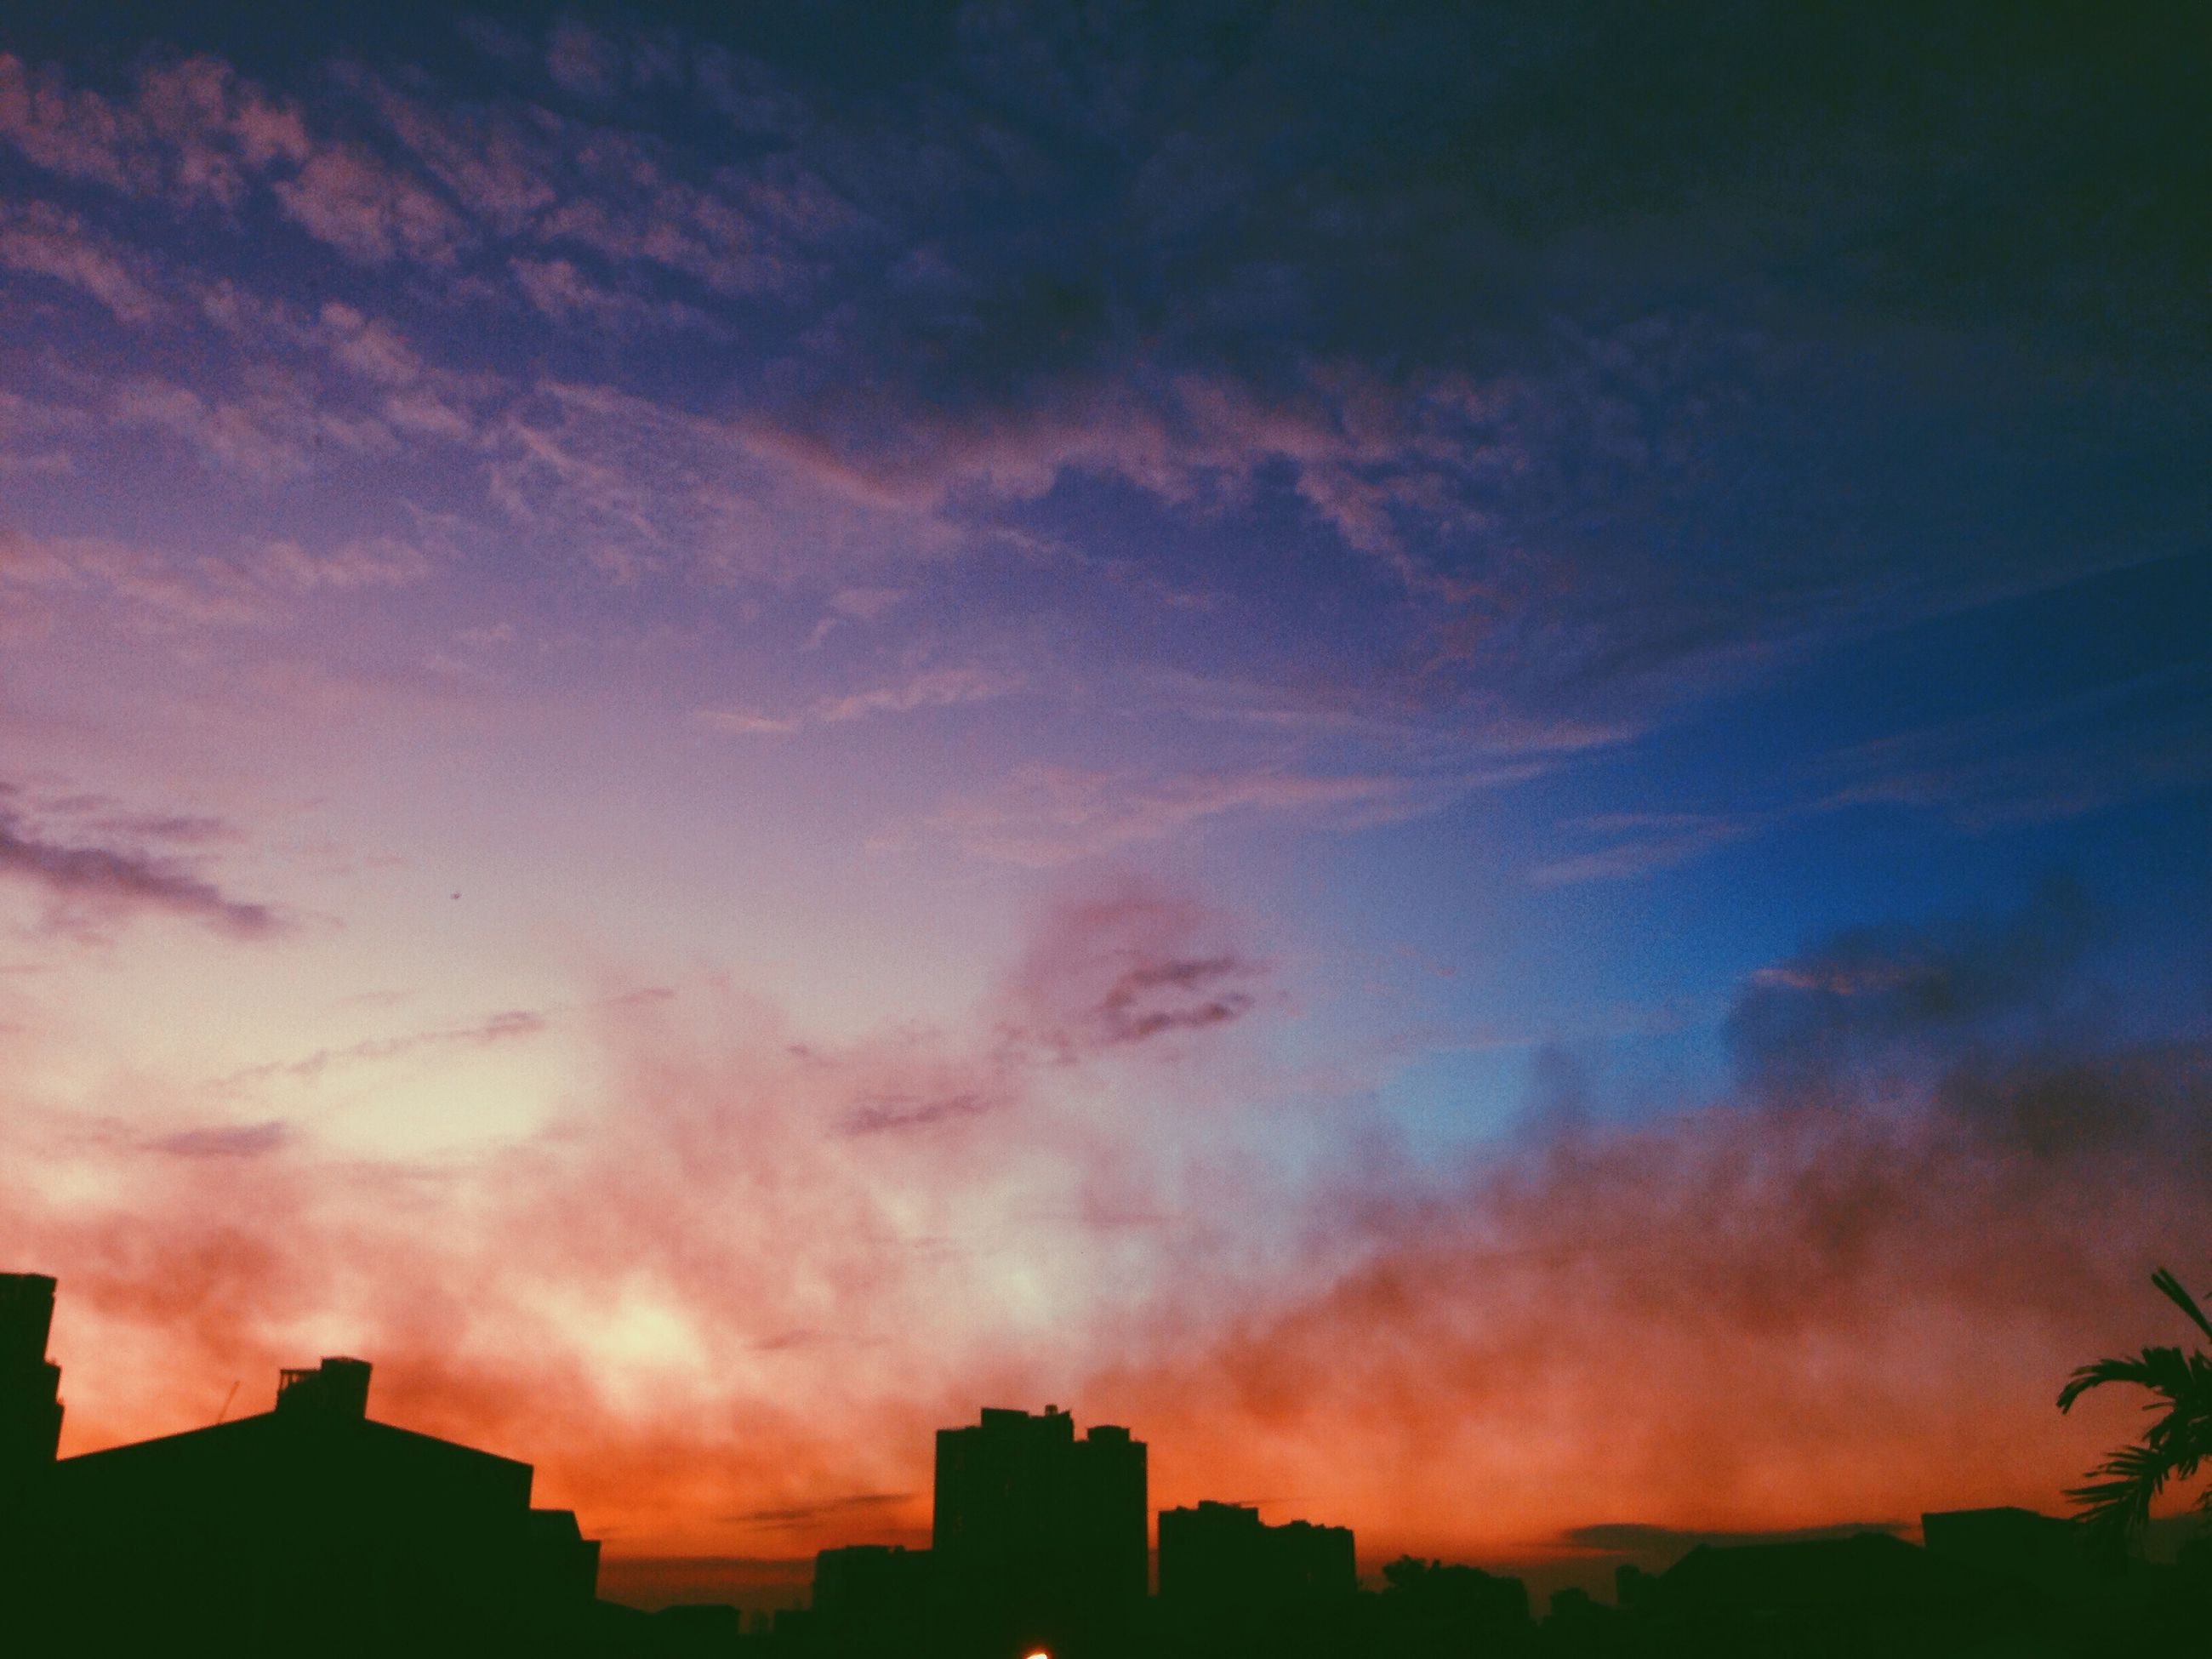 sunset, sky, building exterior, silhouette, architecture, built structure, cloud - sky, beauty in nature, low angle view, dramatic sky, scenics, cloudy, orange color, cloud, nature, house, weather, outdoors, tranquility, dusk